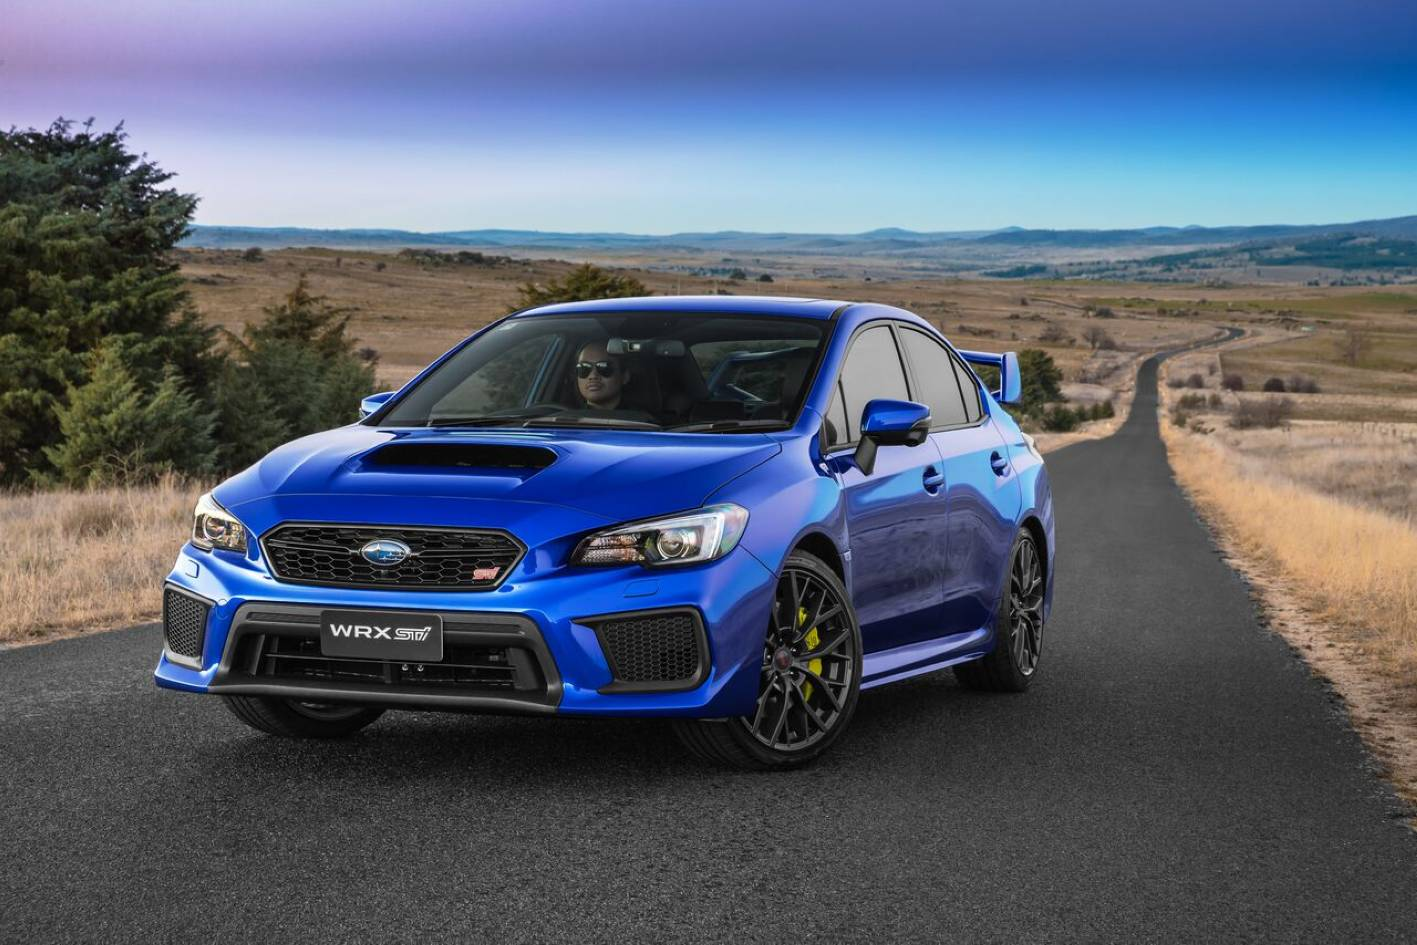 Wrx Cvt >> Updated 2018 Subaru WRX & WRX STI land, new spec.R tops range - ForceGT.com